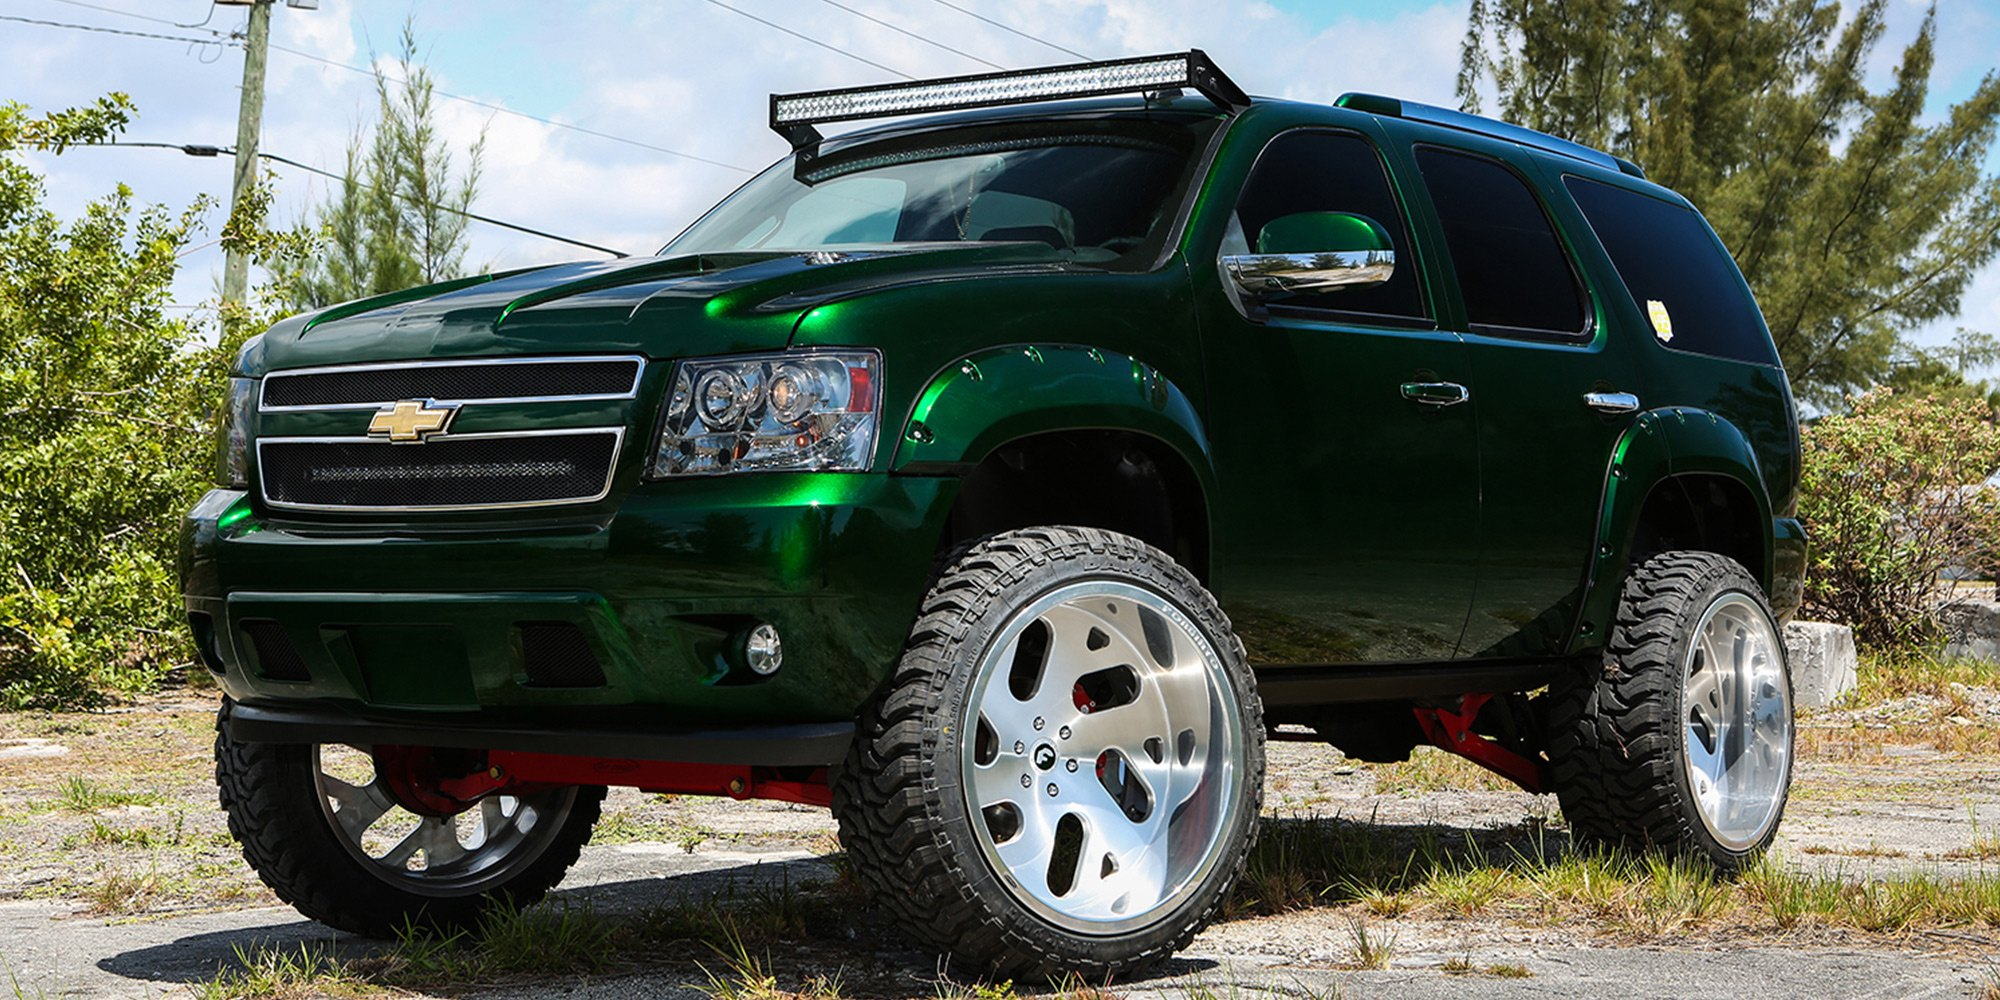 Chevy Tahoe In Purple Green Color With Offorad Mods Photo By Forgiato